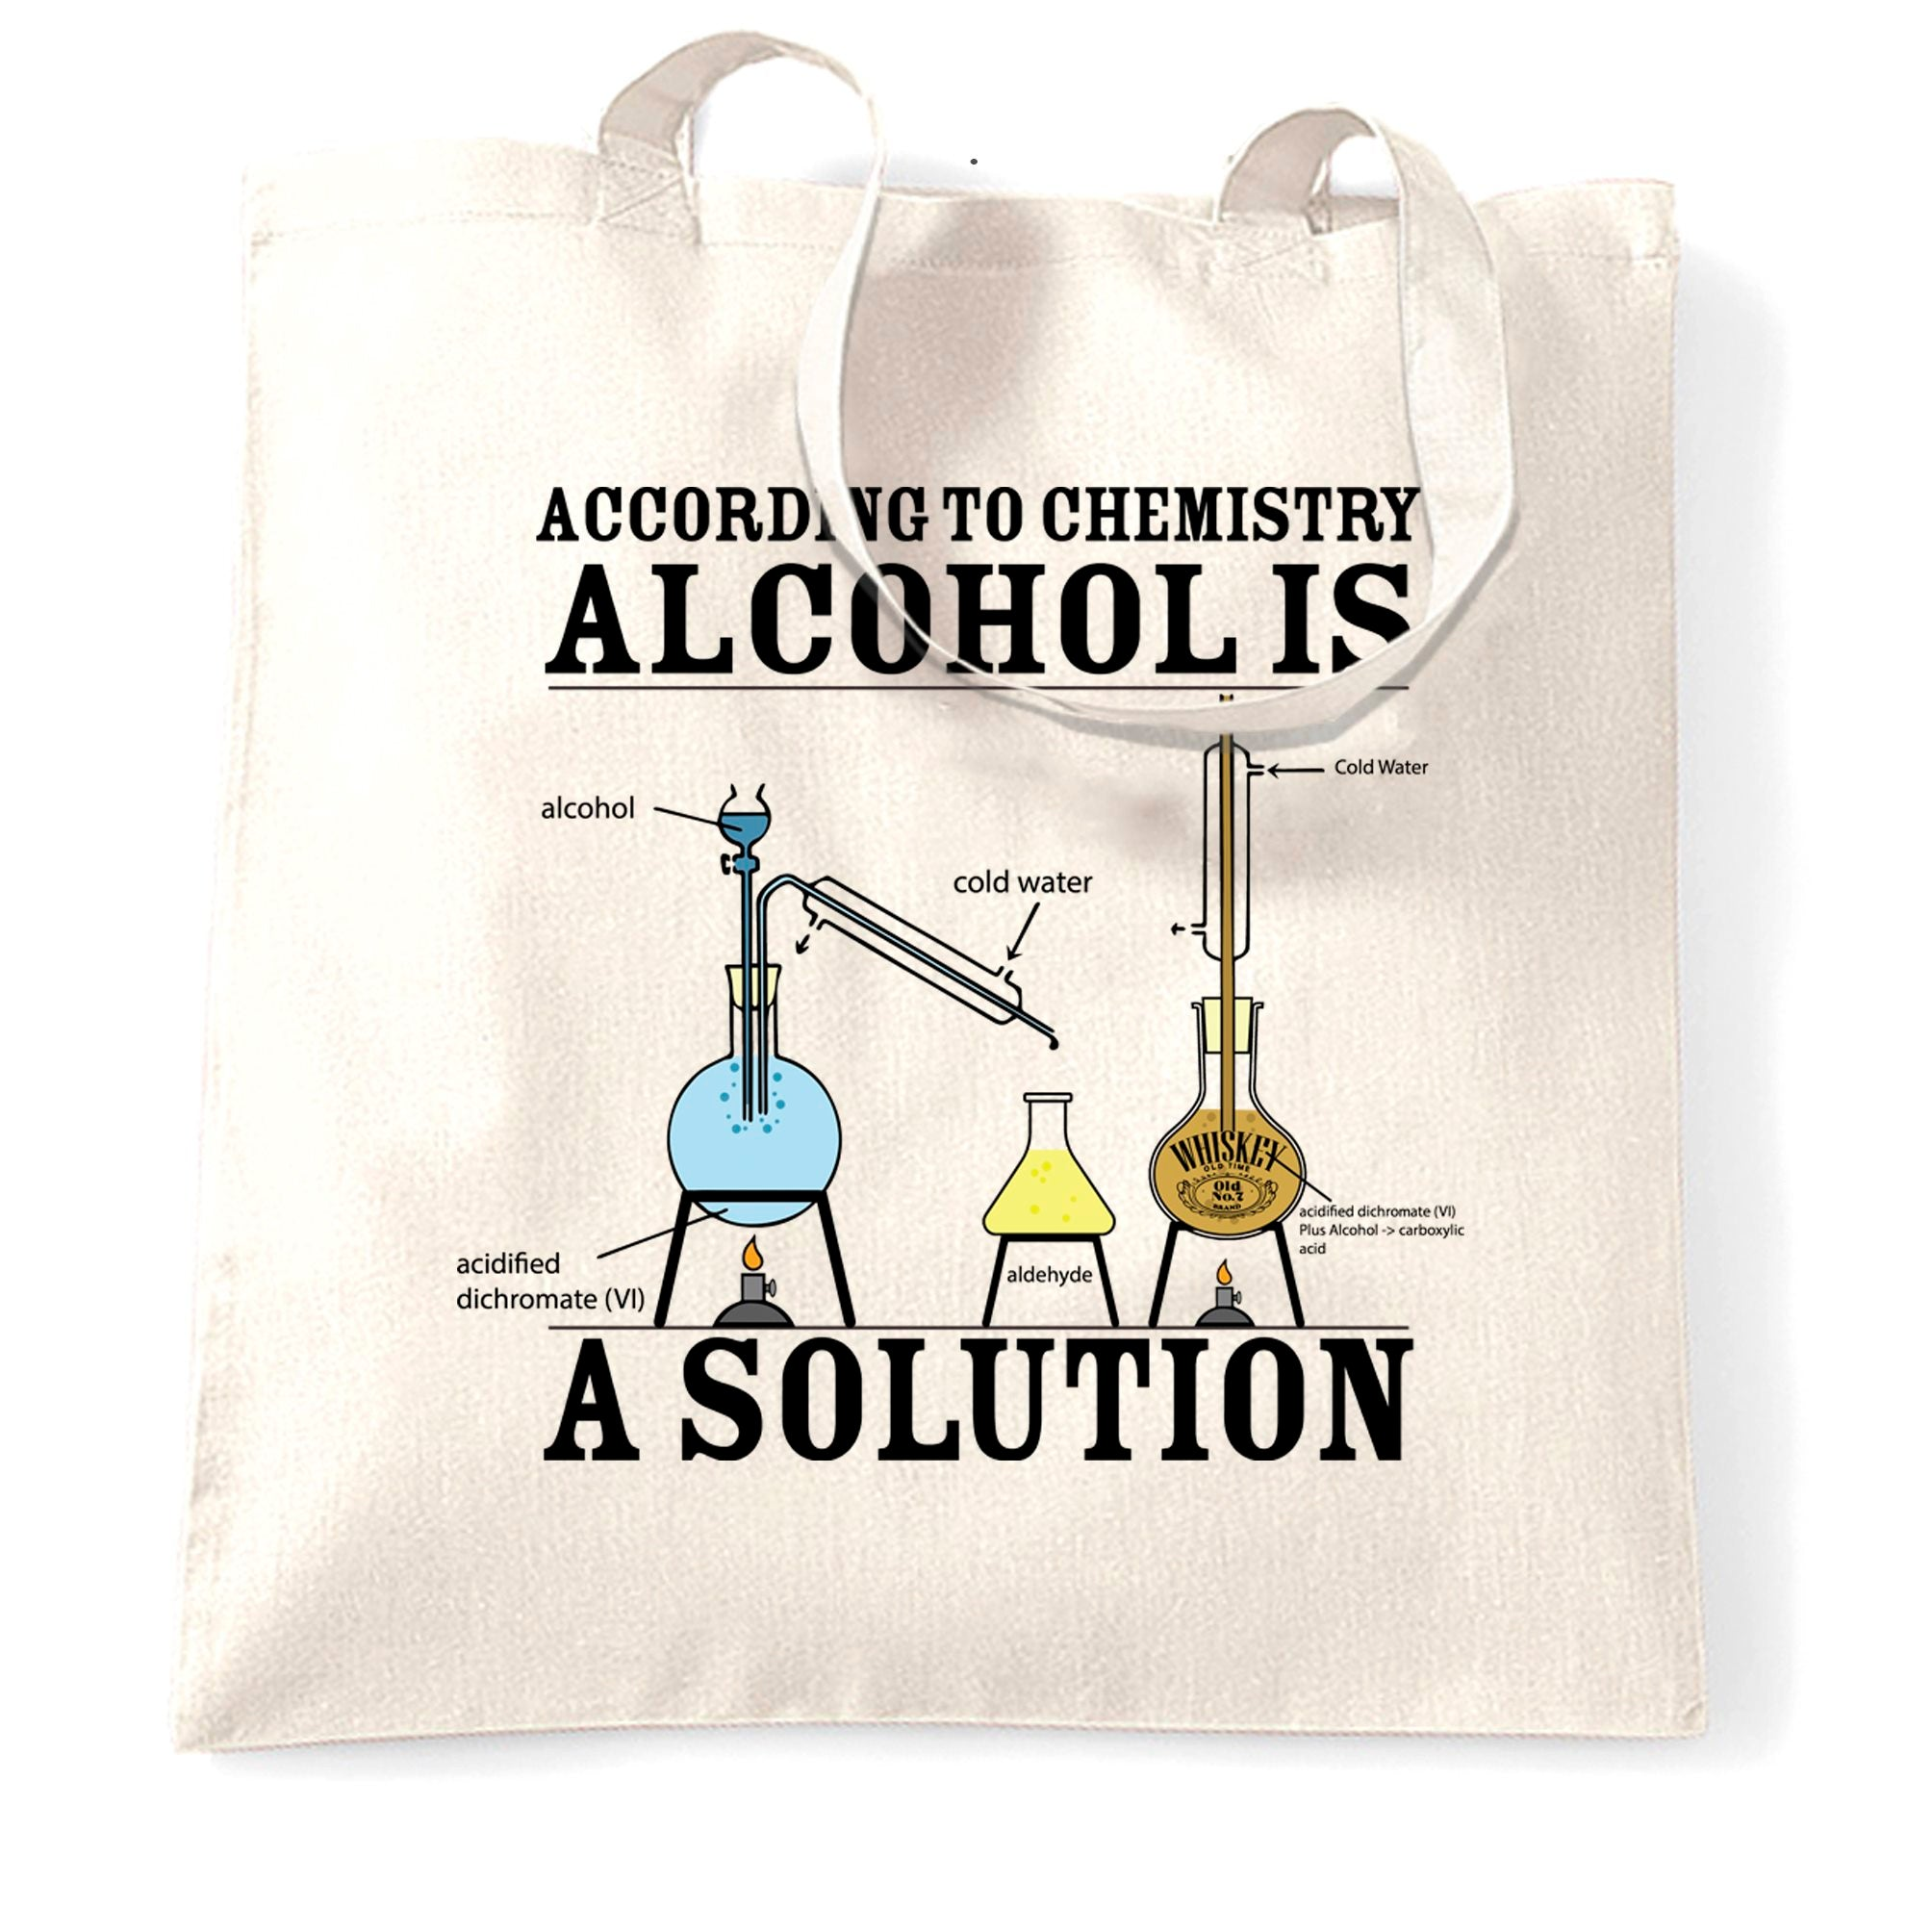 Pub Tote Bag According To Chemistry Alcohols a Solution